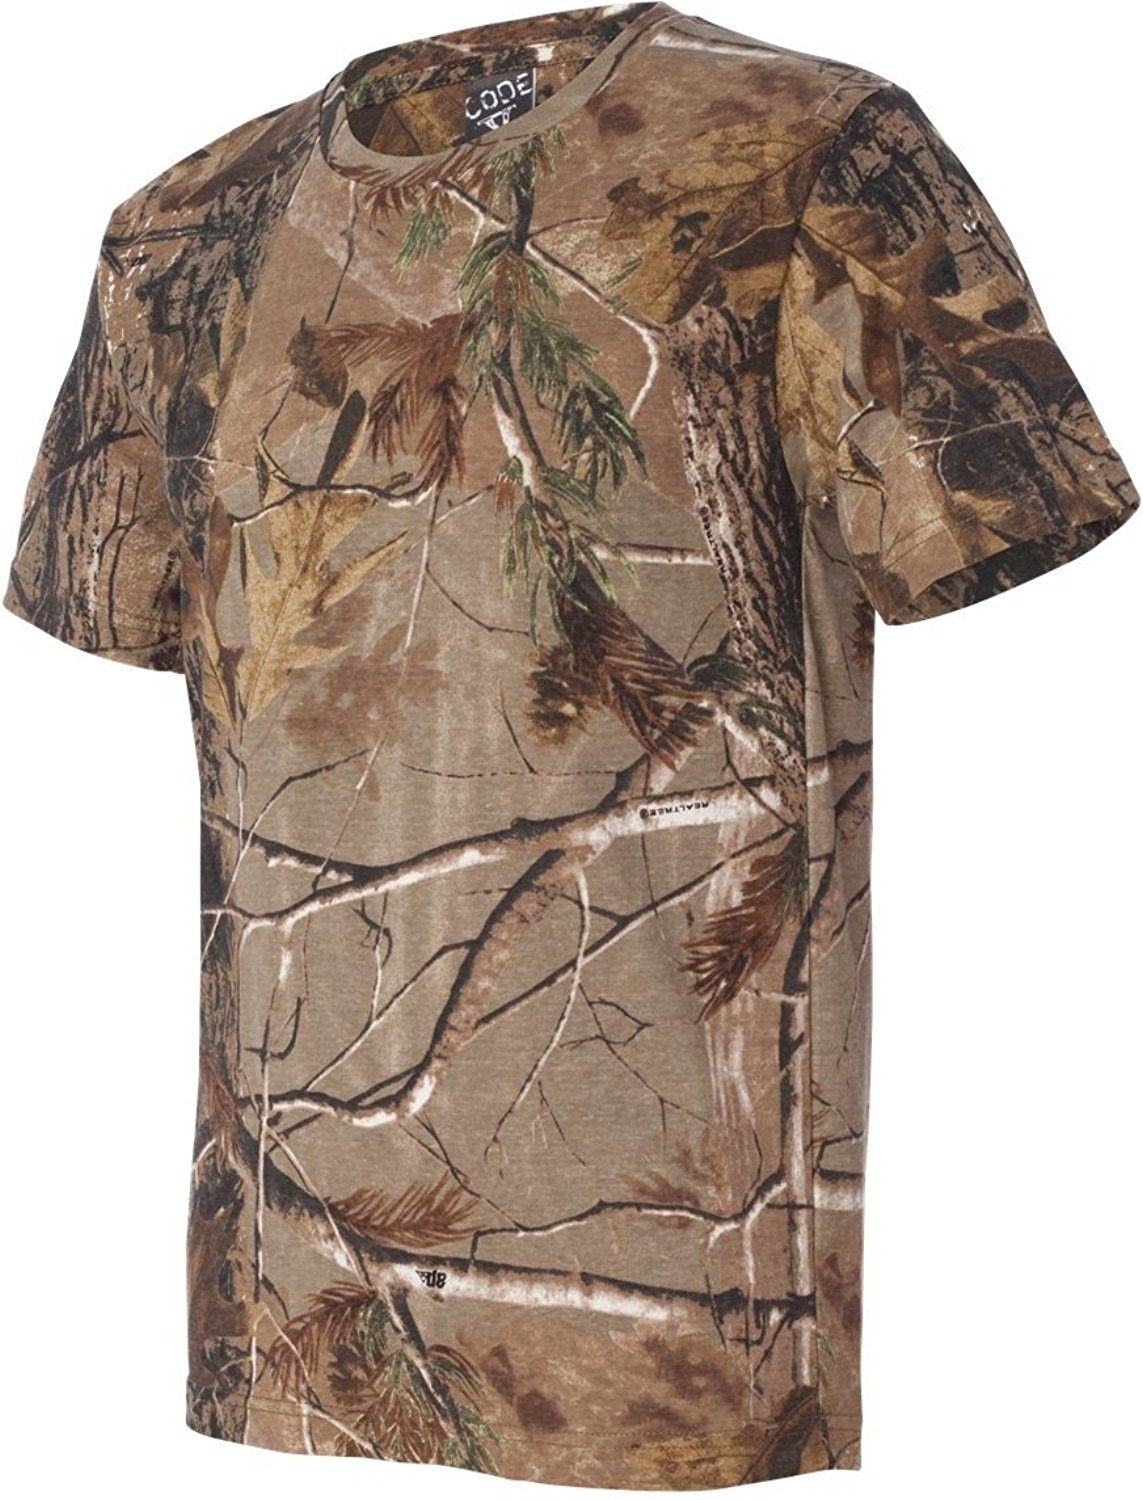 c5512351 Men's Clothing, Shirts, T-Shirts, Code V 3980 Licensed Realtree Camouflage  S-Sleeve T-Shirt - Realtree Ap - CB115Z0F9A7 #men #fashion #clothing #style  ...